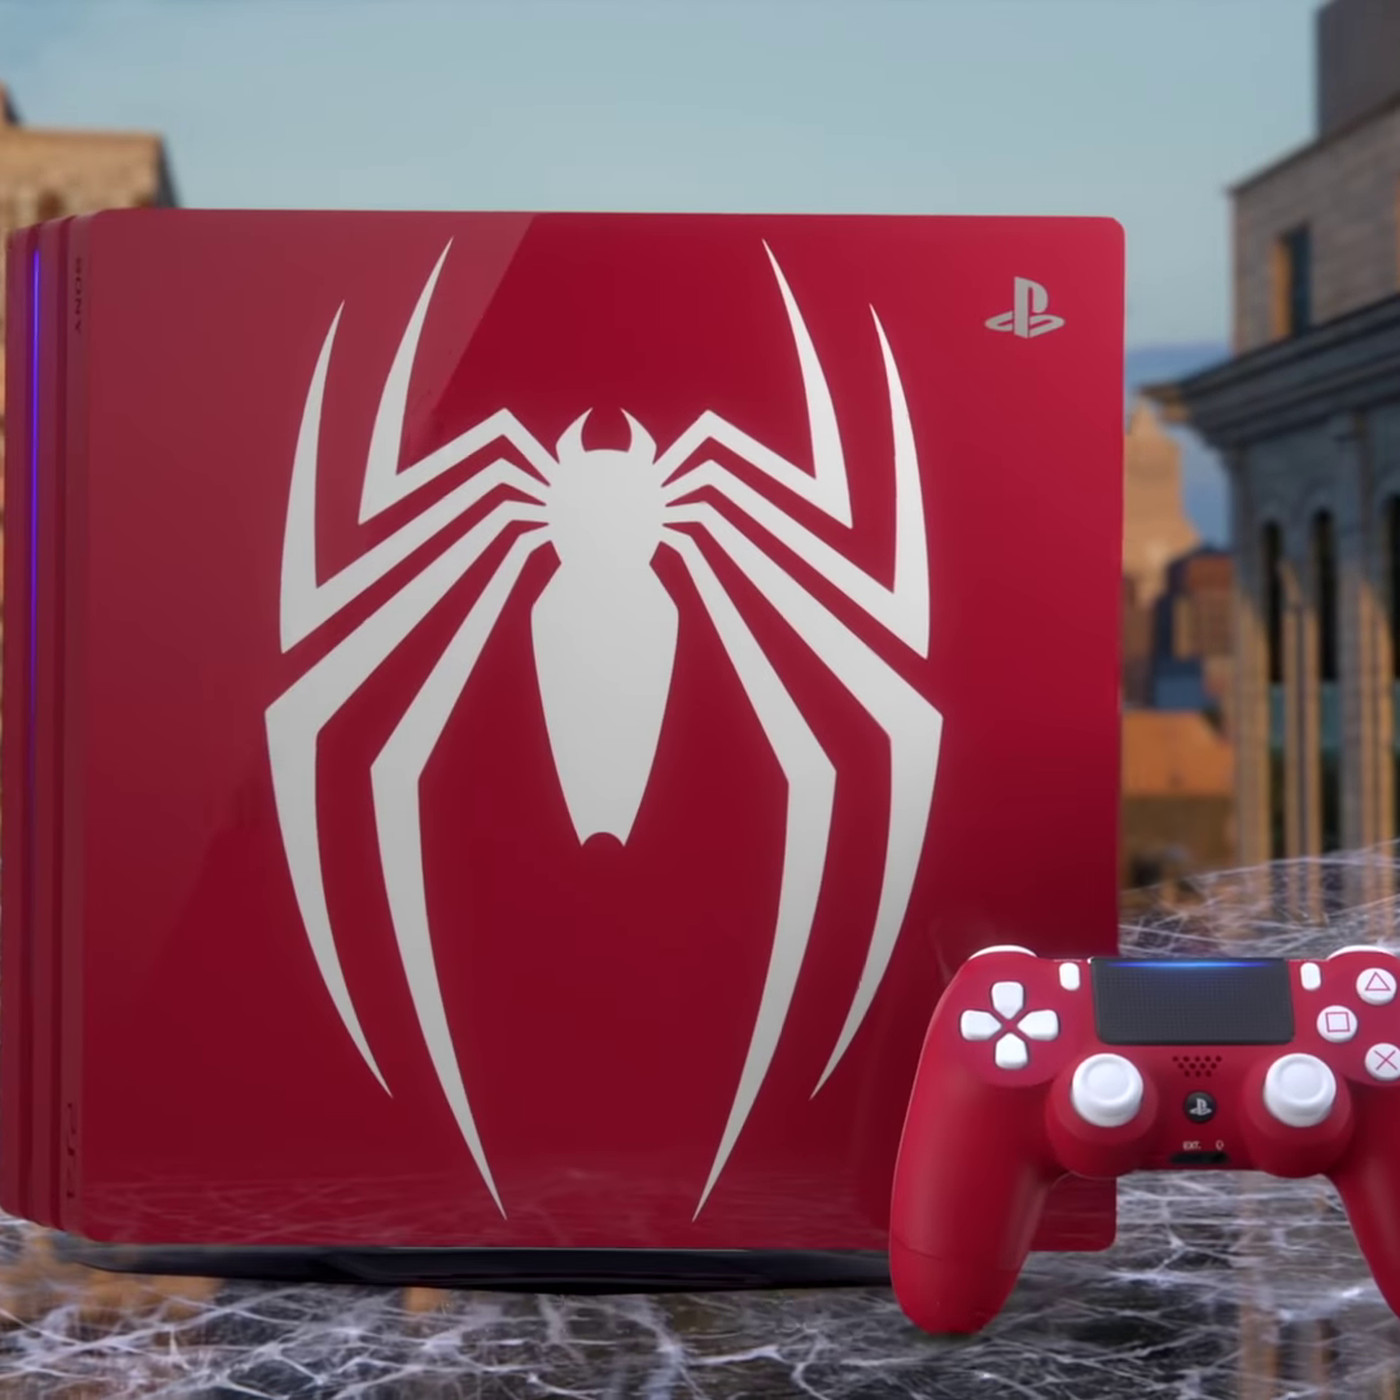 Spider-Man gets a friendly neighborhood PS4 Pro bundle at